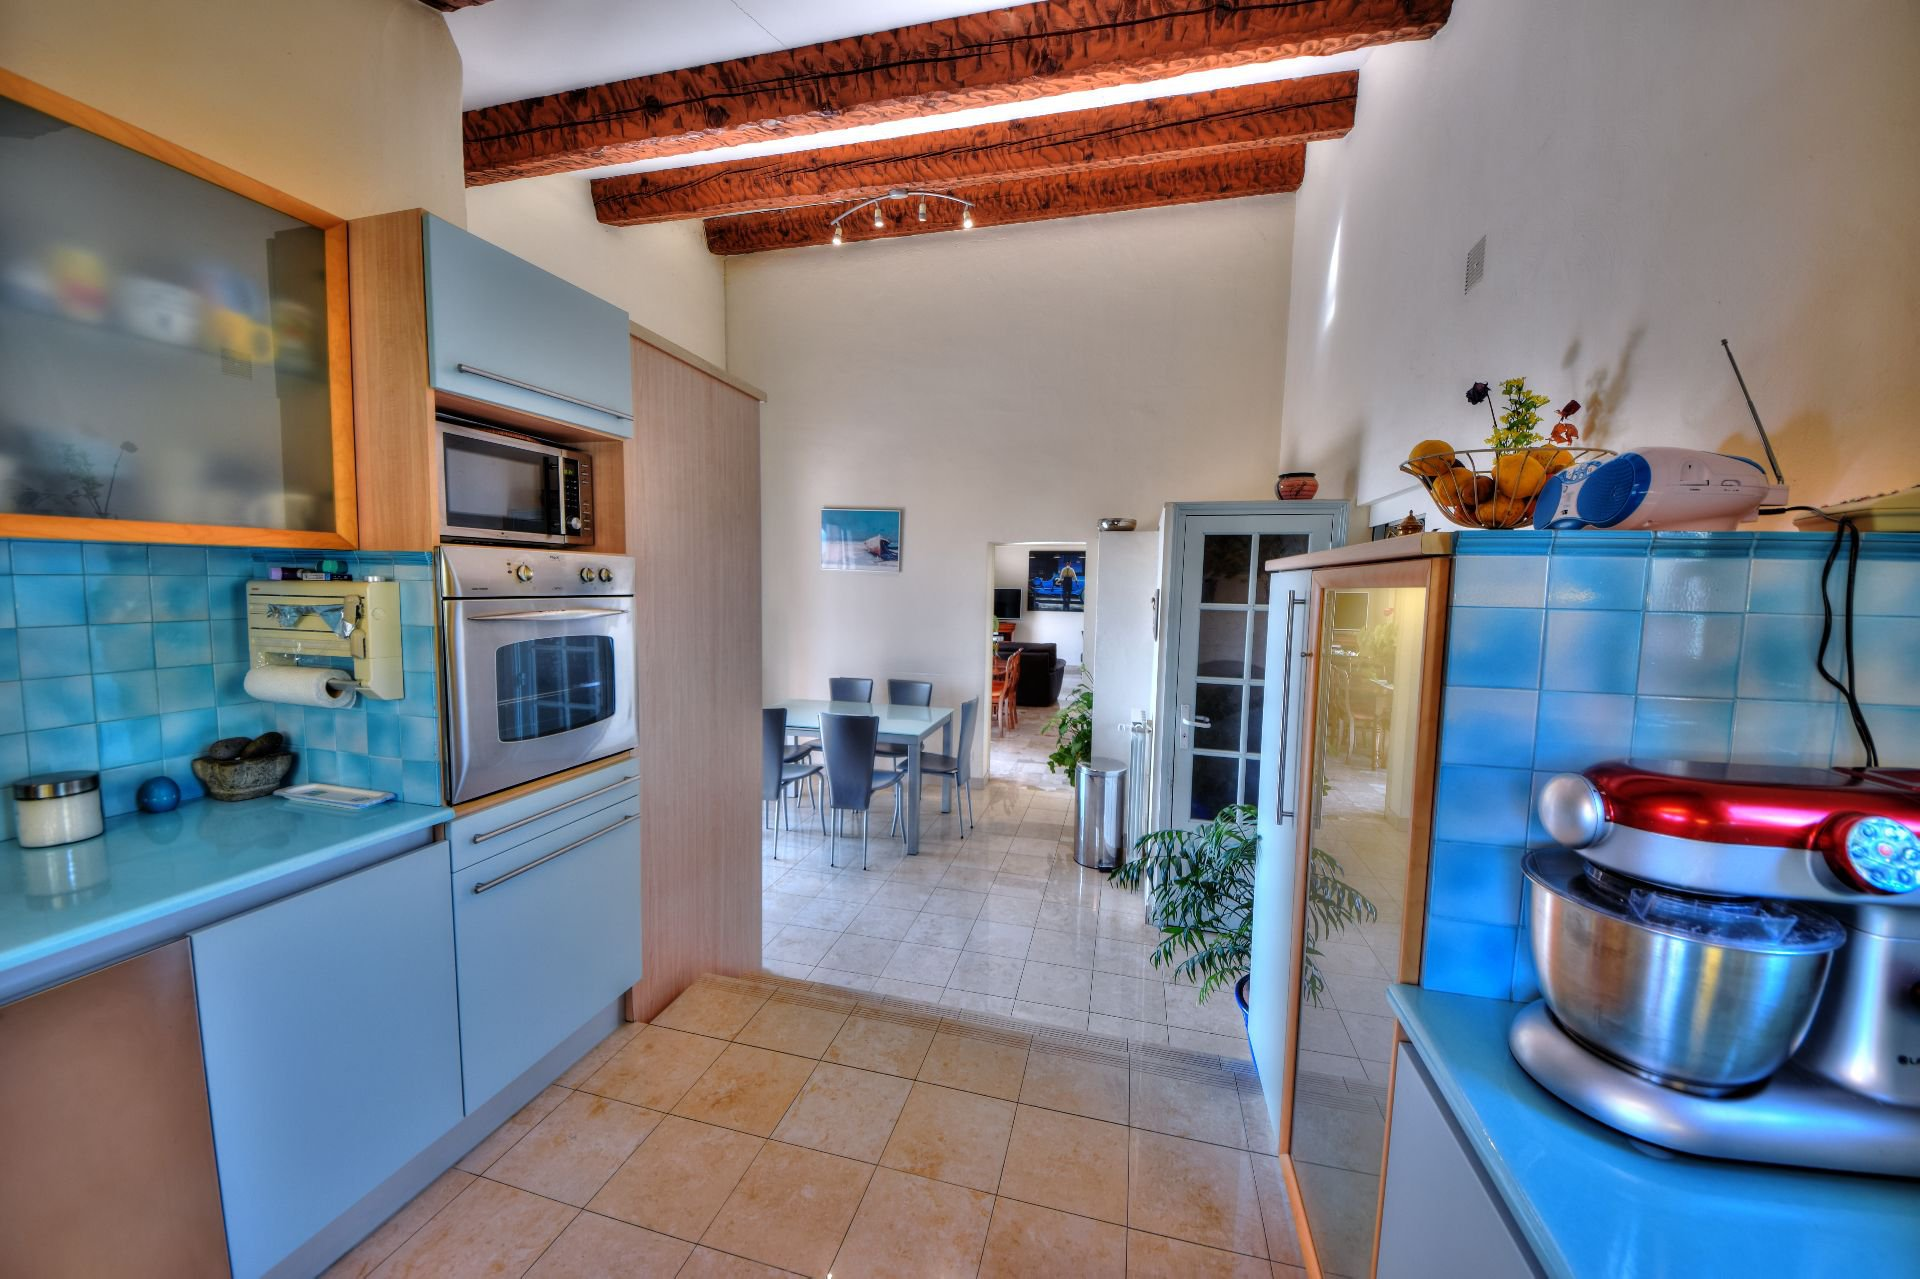 Kitchen of the villa 328 m² panoramic view, Draguignan, Var, Provence